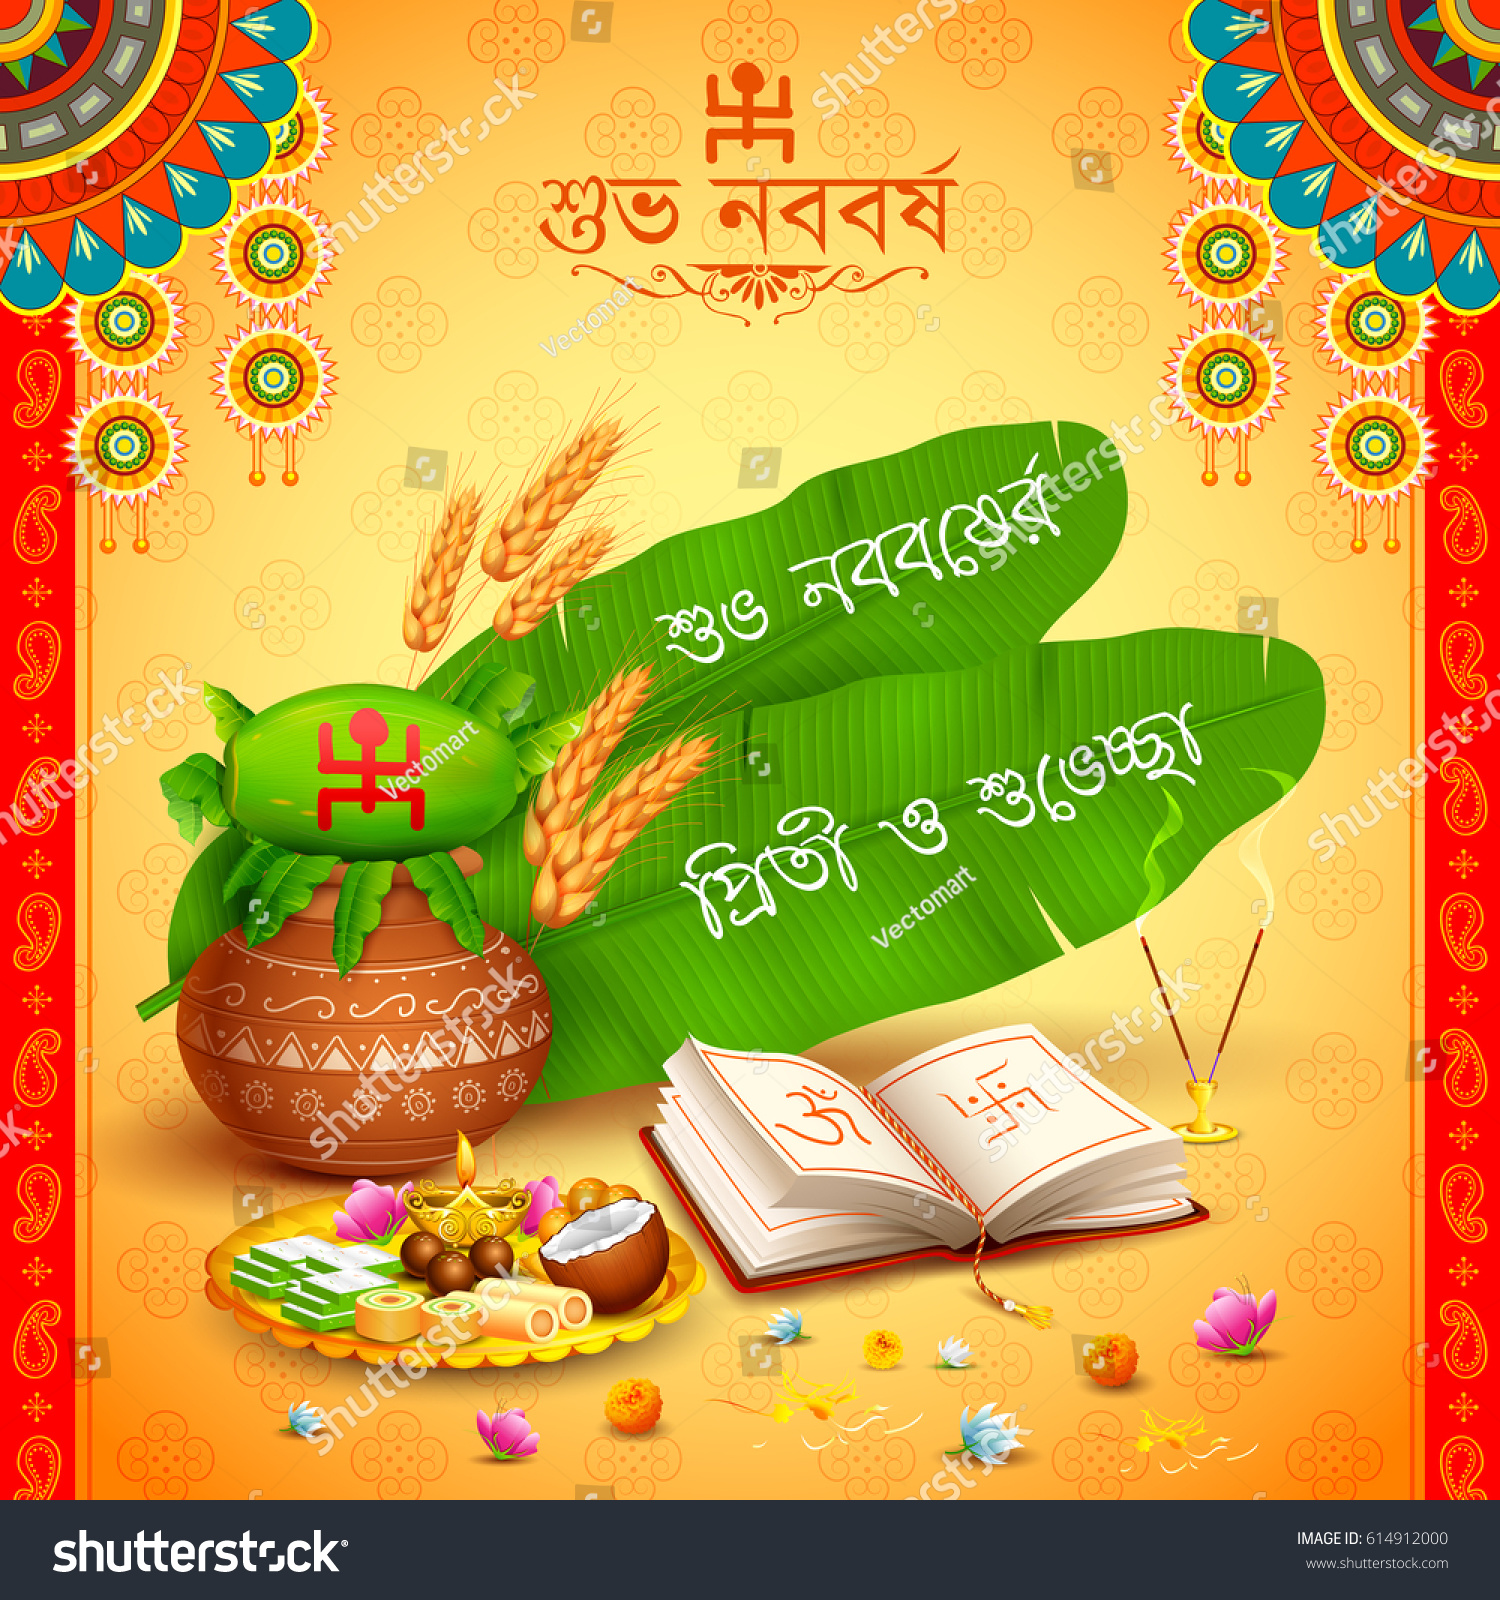 Illustration greeting background bengali text subho stock vector illustration of greeting background with bengali text subho nababarsha priti o subhecha meaning love and wishes m4hsunfo